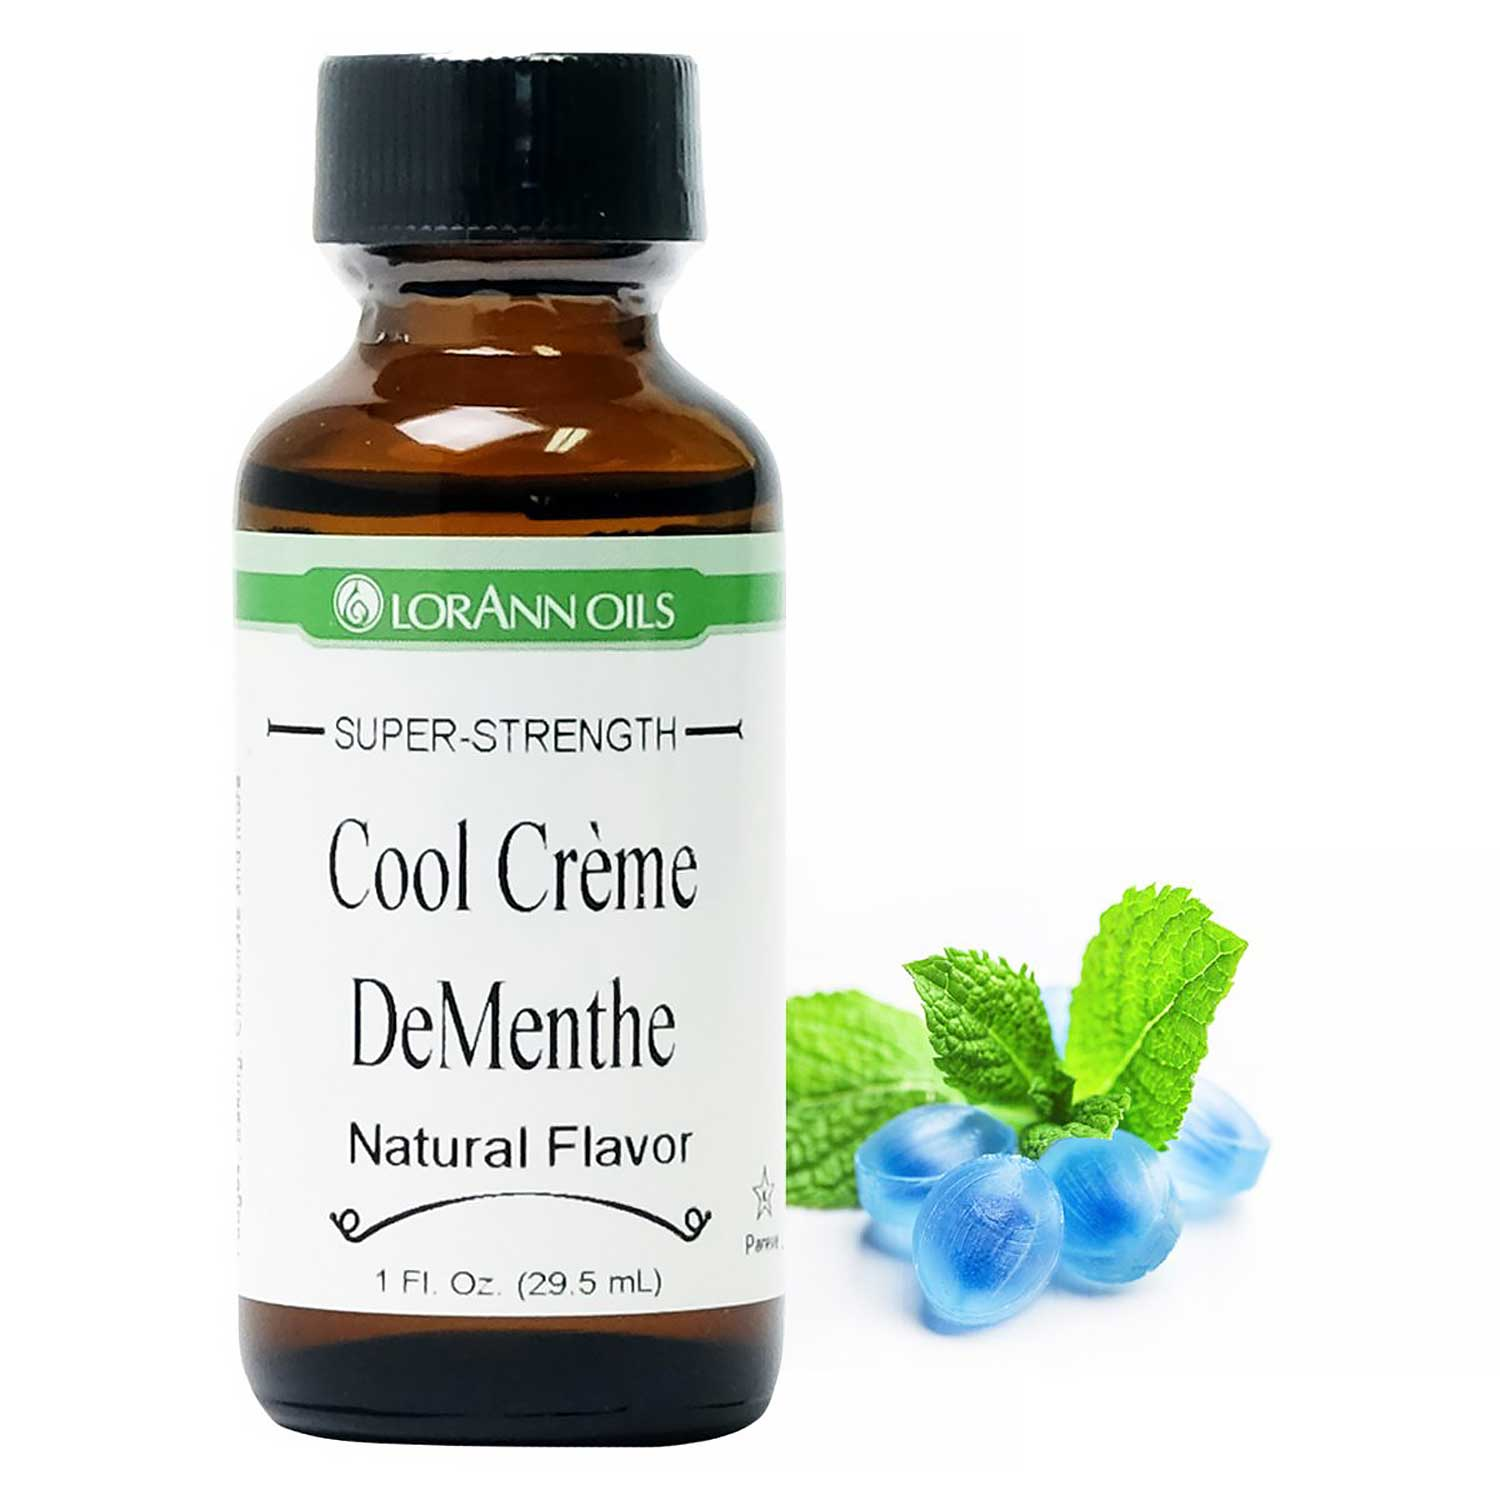 Cool Crème DeMenthe LorAnn Super-Strength Flavor